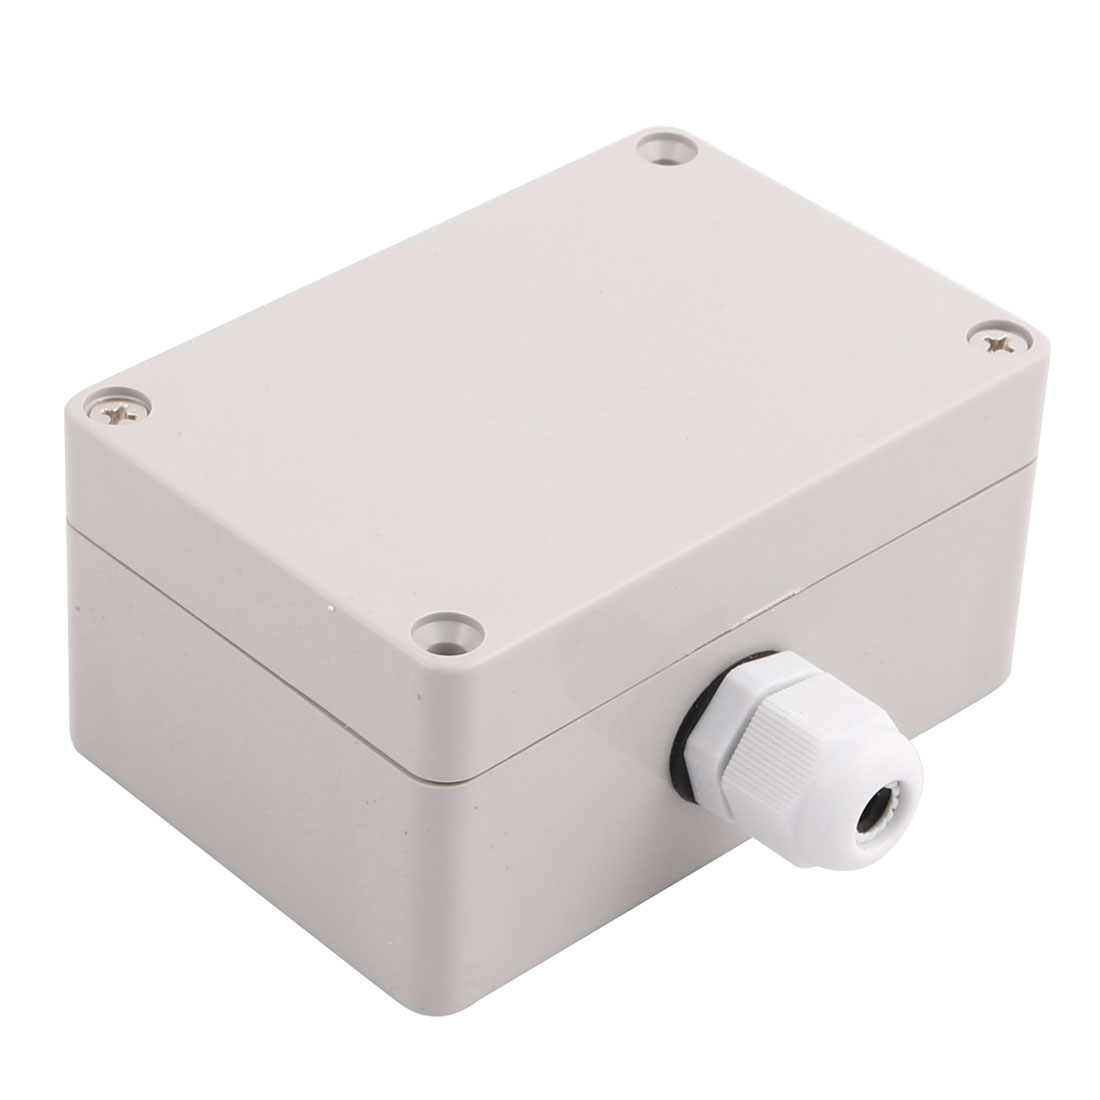 Set 100x68x50mm 1 Inlet to 1 Outlet Junction Box w Connector Gland